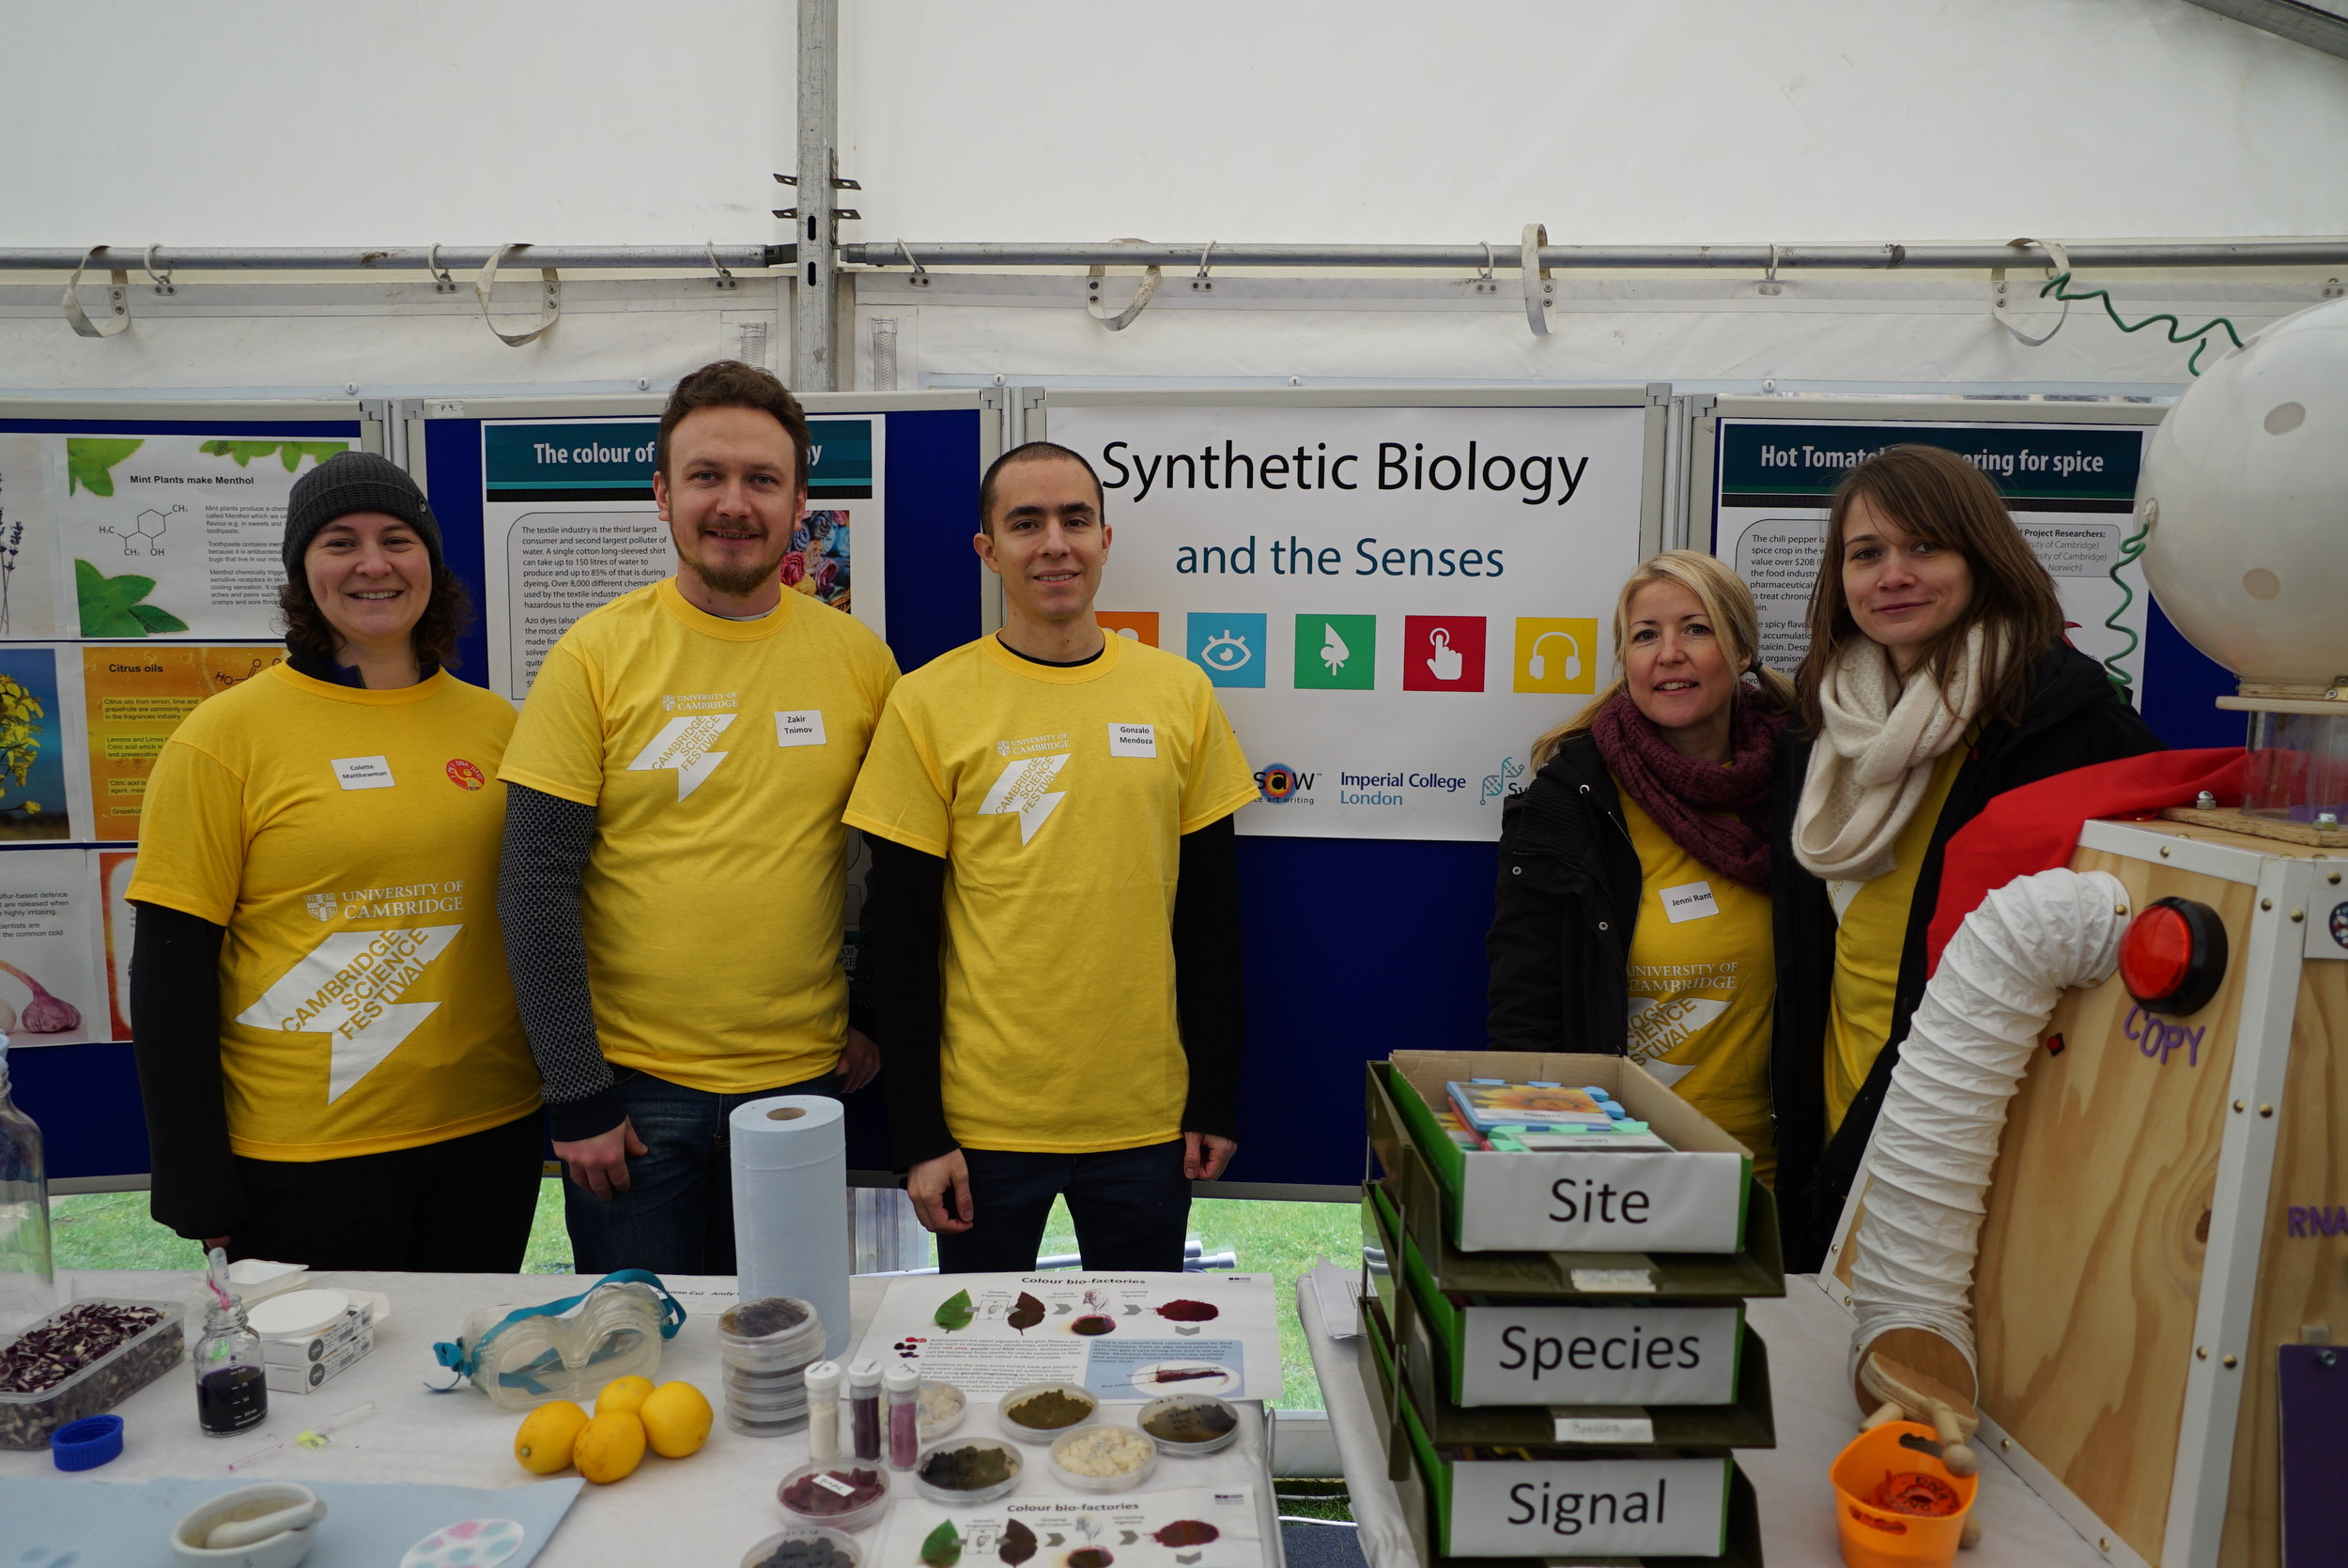 The morning shift: Some of the Cambridge Science Festival 2018 team ready for doors open.